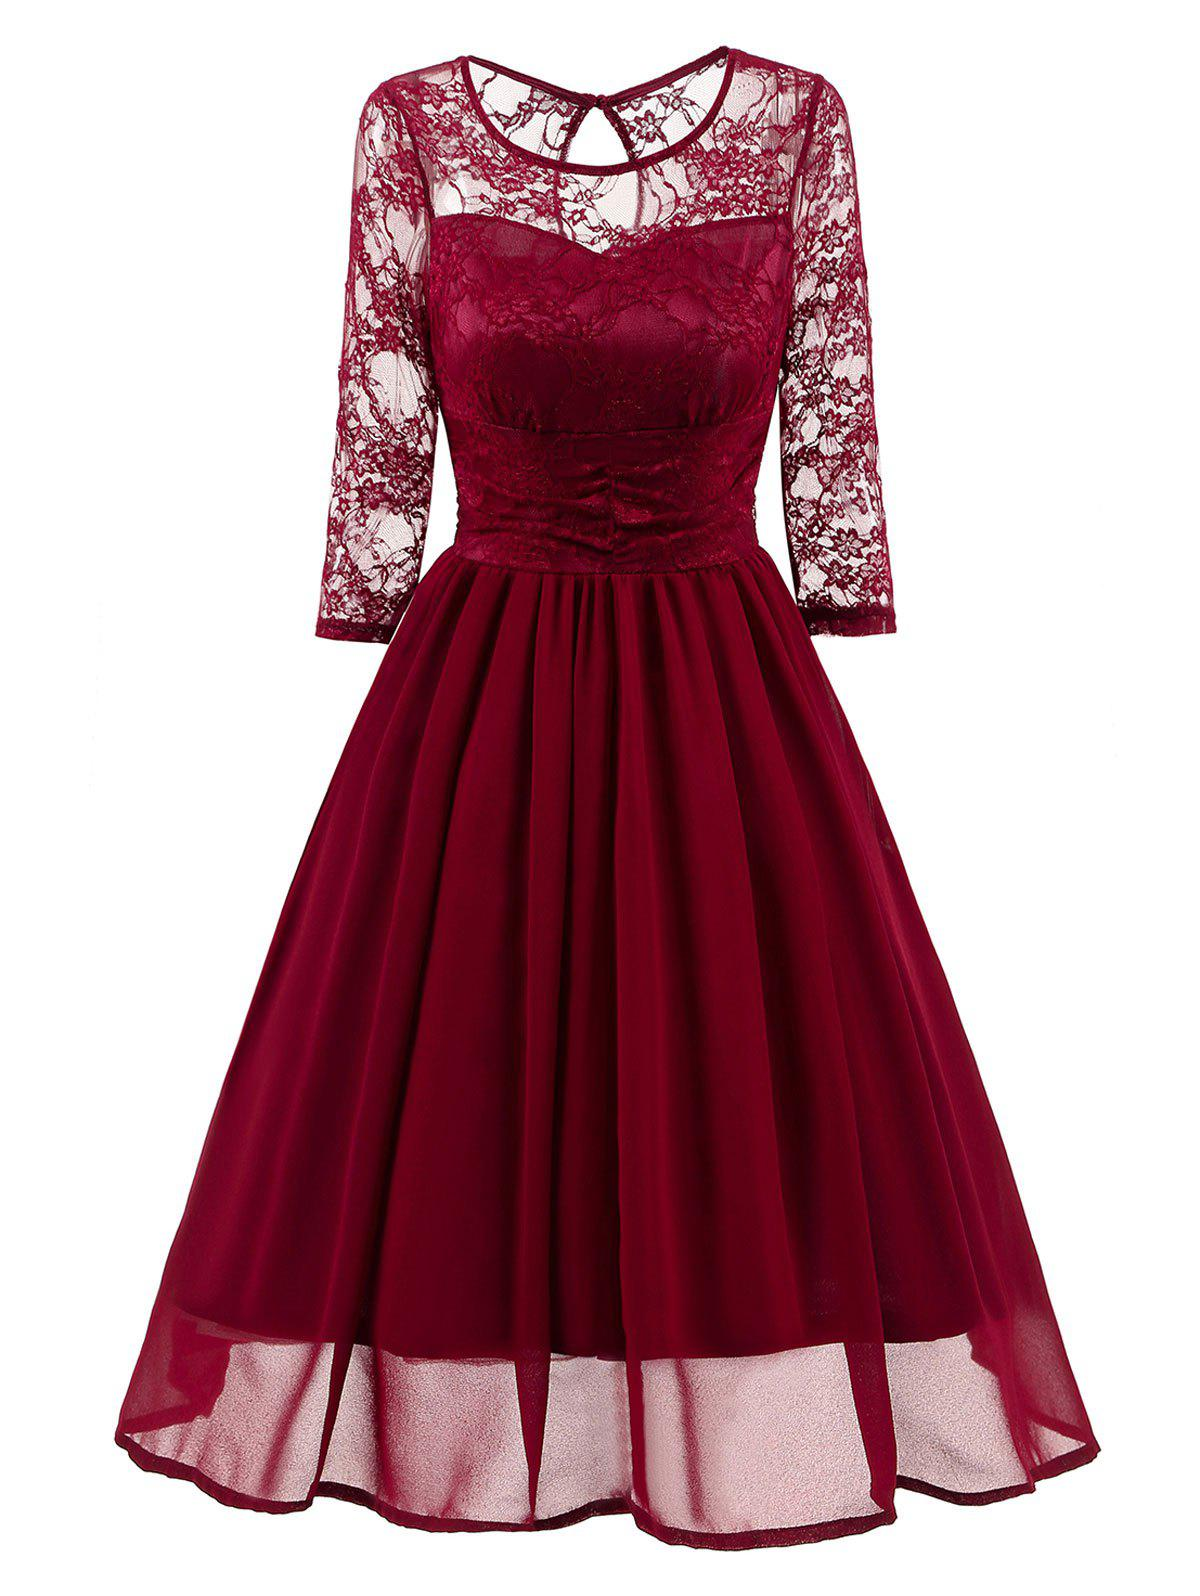 Lace Mesh Insert Vintage A Line DressWOMEN<br><br>Size: 2XL; Color: WINE RED; Style: Vintage; Material: Polyester,Spandex; Silhouette: A-Line; Dresses Length: Knee-Length; Neckline: Round Collar; Sleeve Length: 3/4 Length Sleeves; Embellishment: Lace; Pattern Type: Solid; With Belt: No; Season: Fall,Spring; Weight: 0.4550kg; Package Contents: 1 x Dress;